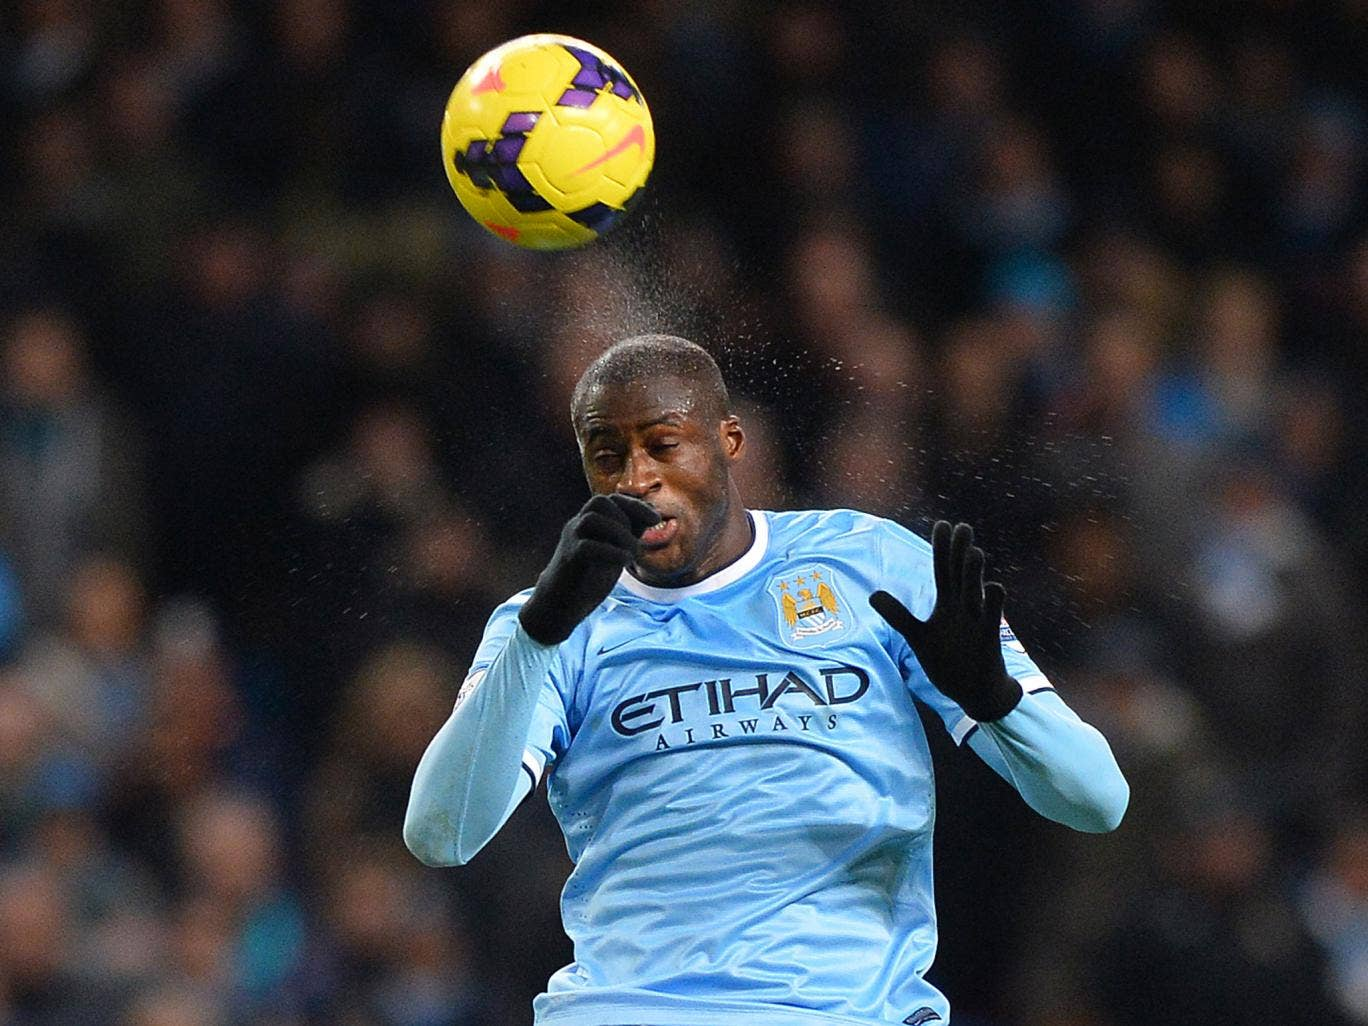 Yaya Toure could face further disciplinary action after he appeared to kick out at Norwich forward Ricky van Wolfswinkel